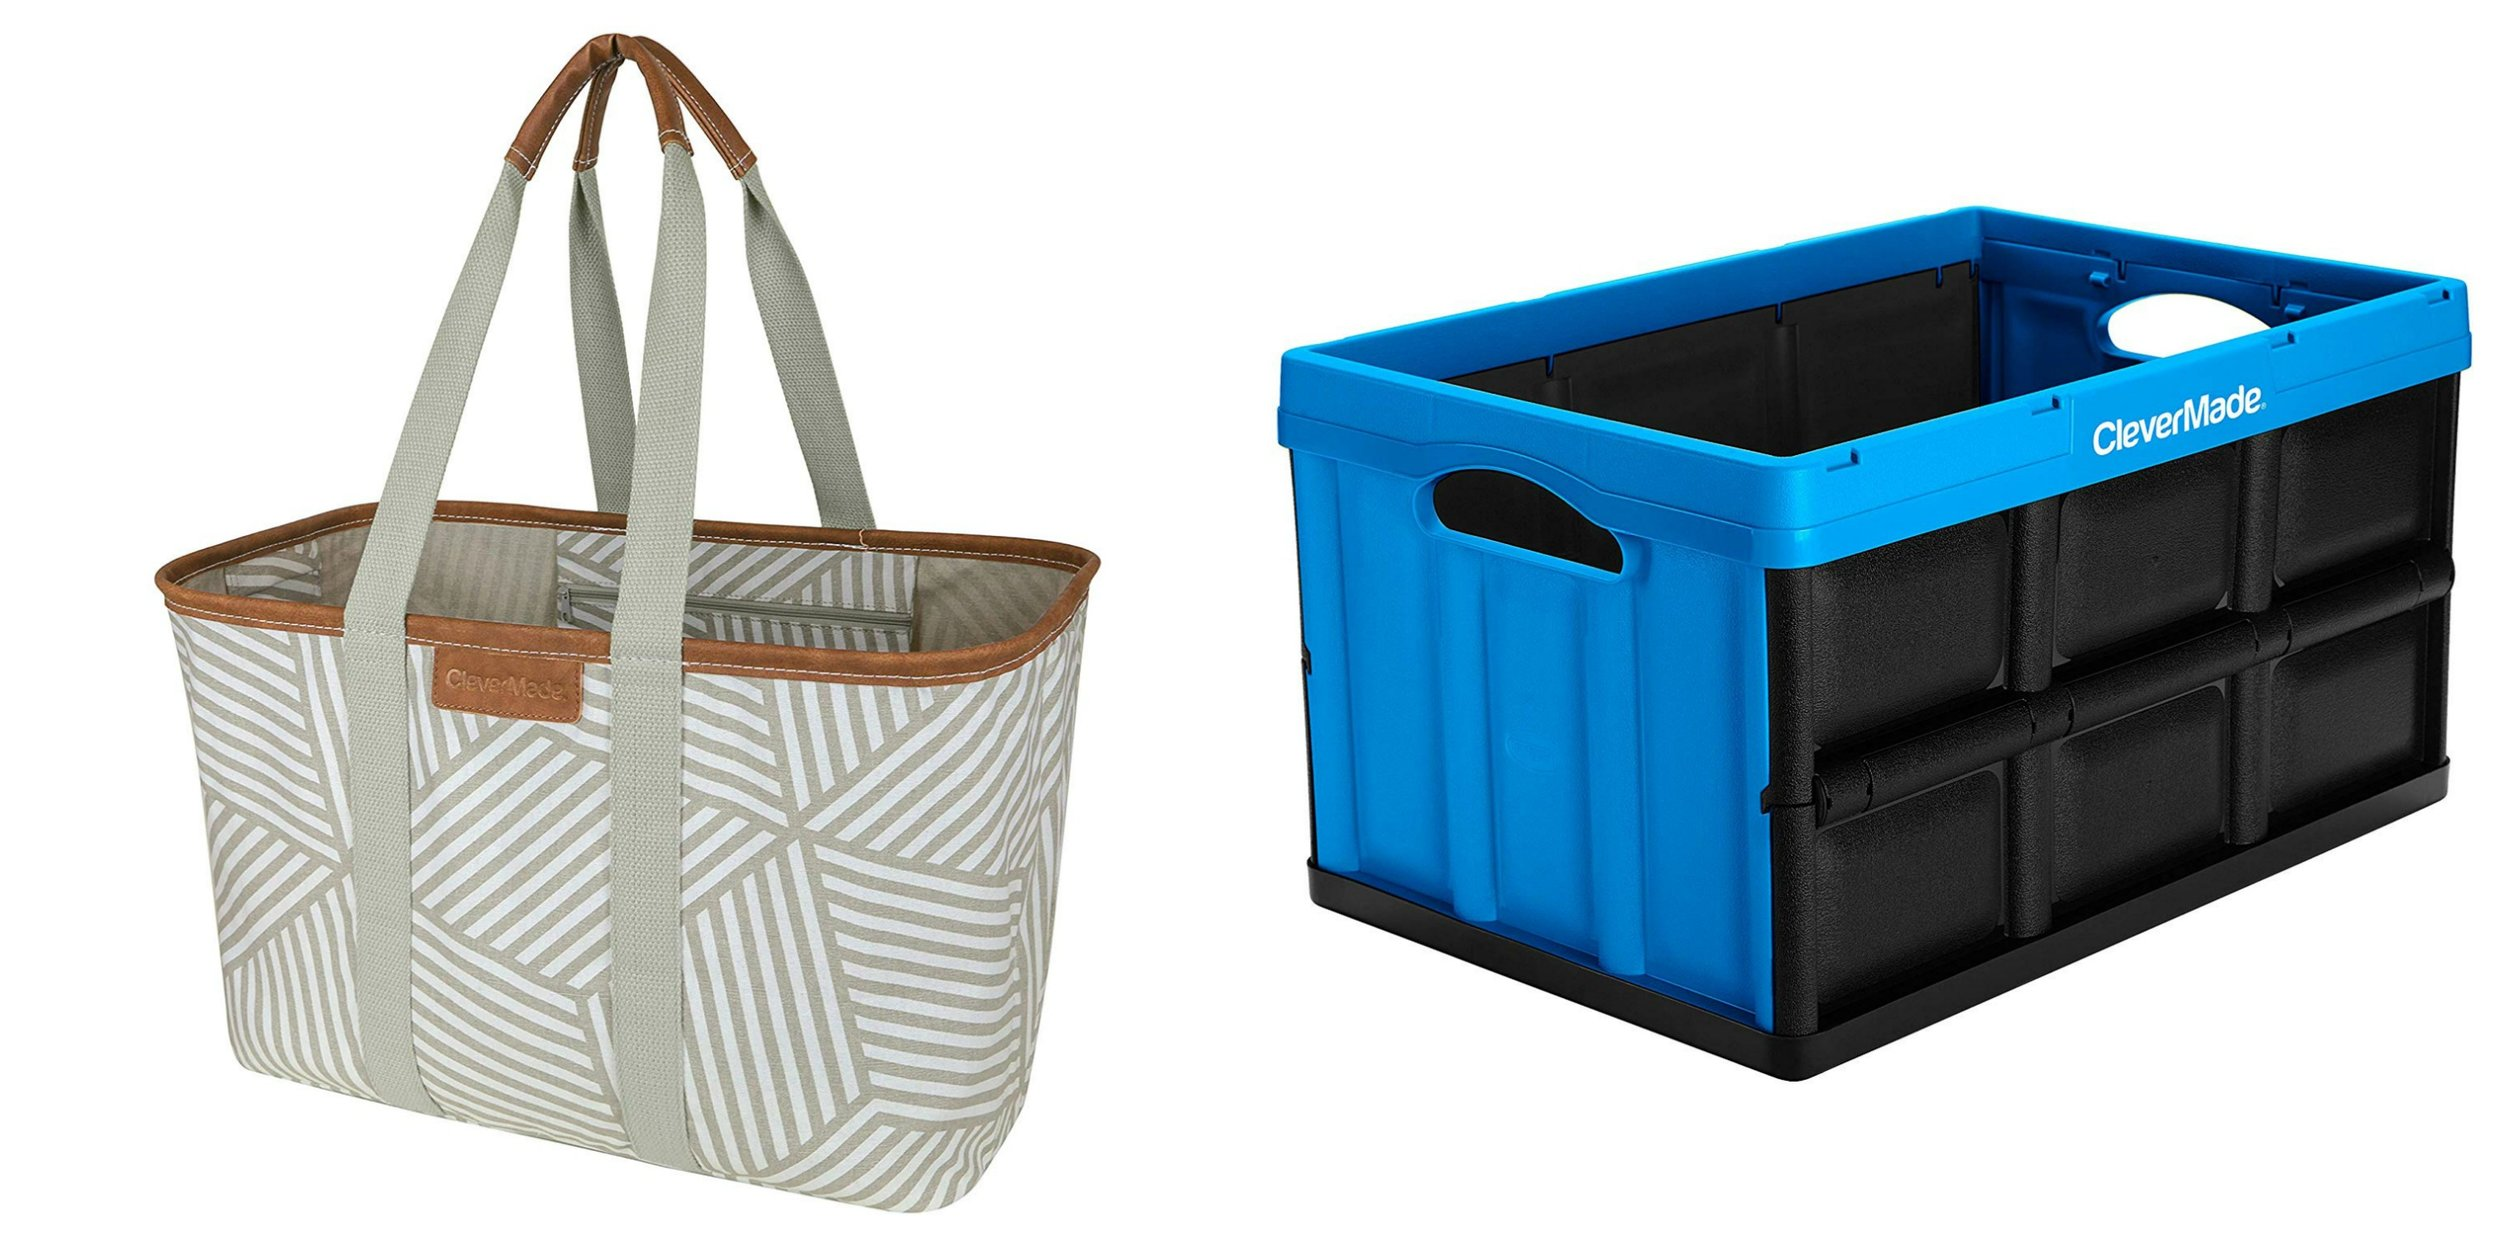 8.19 Clevermade Crate & Tote.jpg